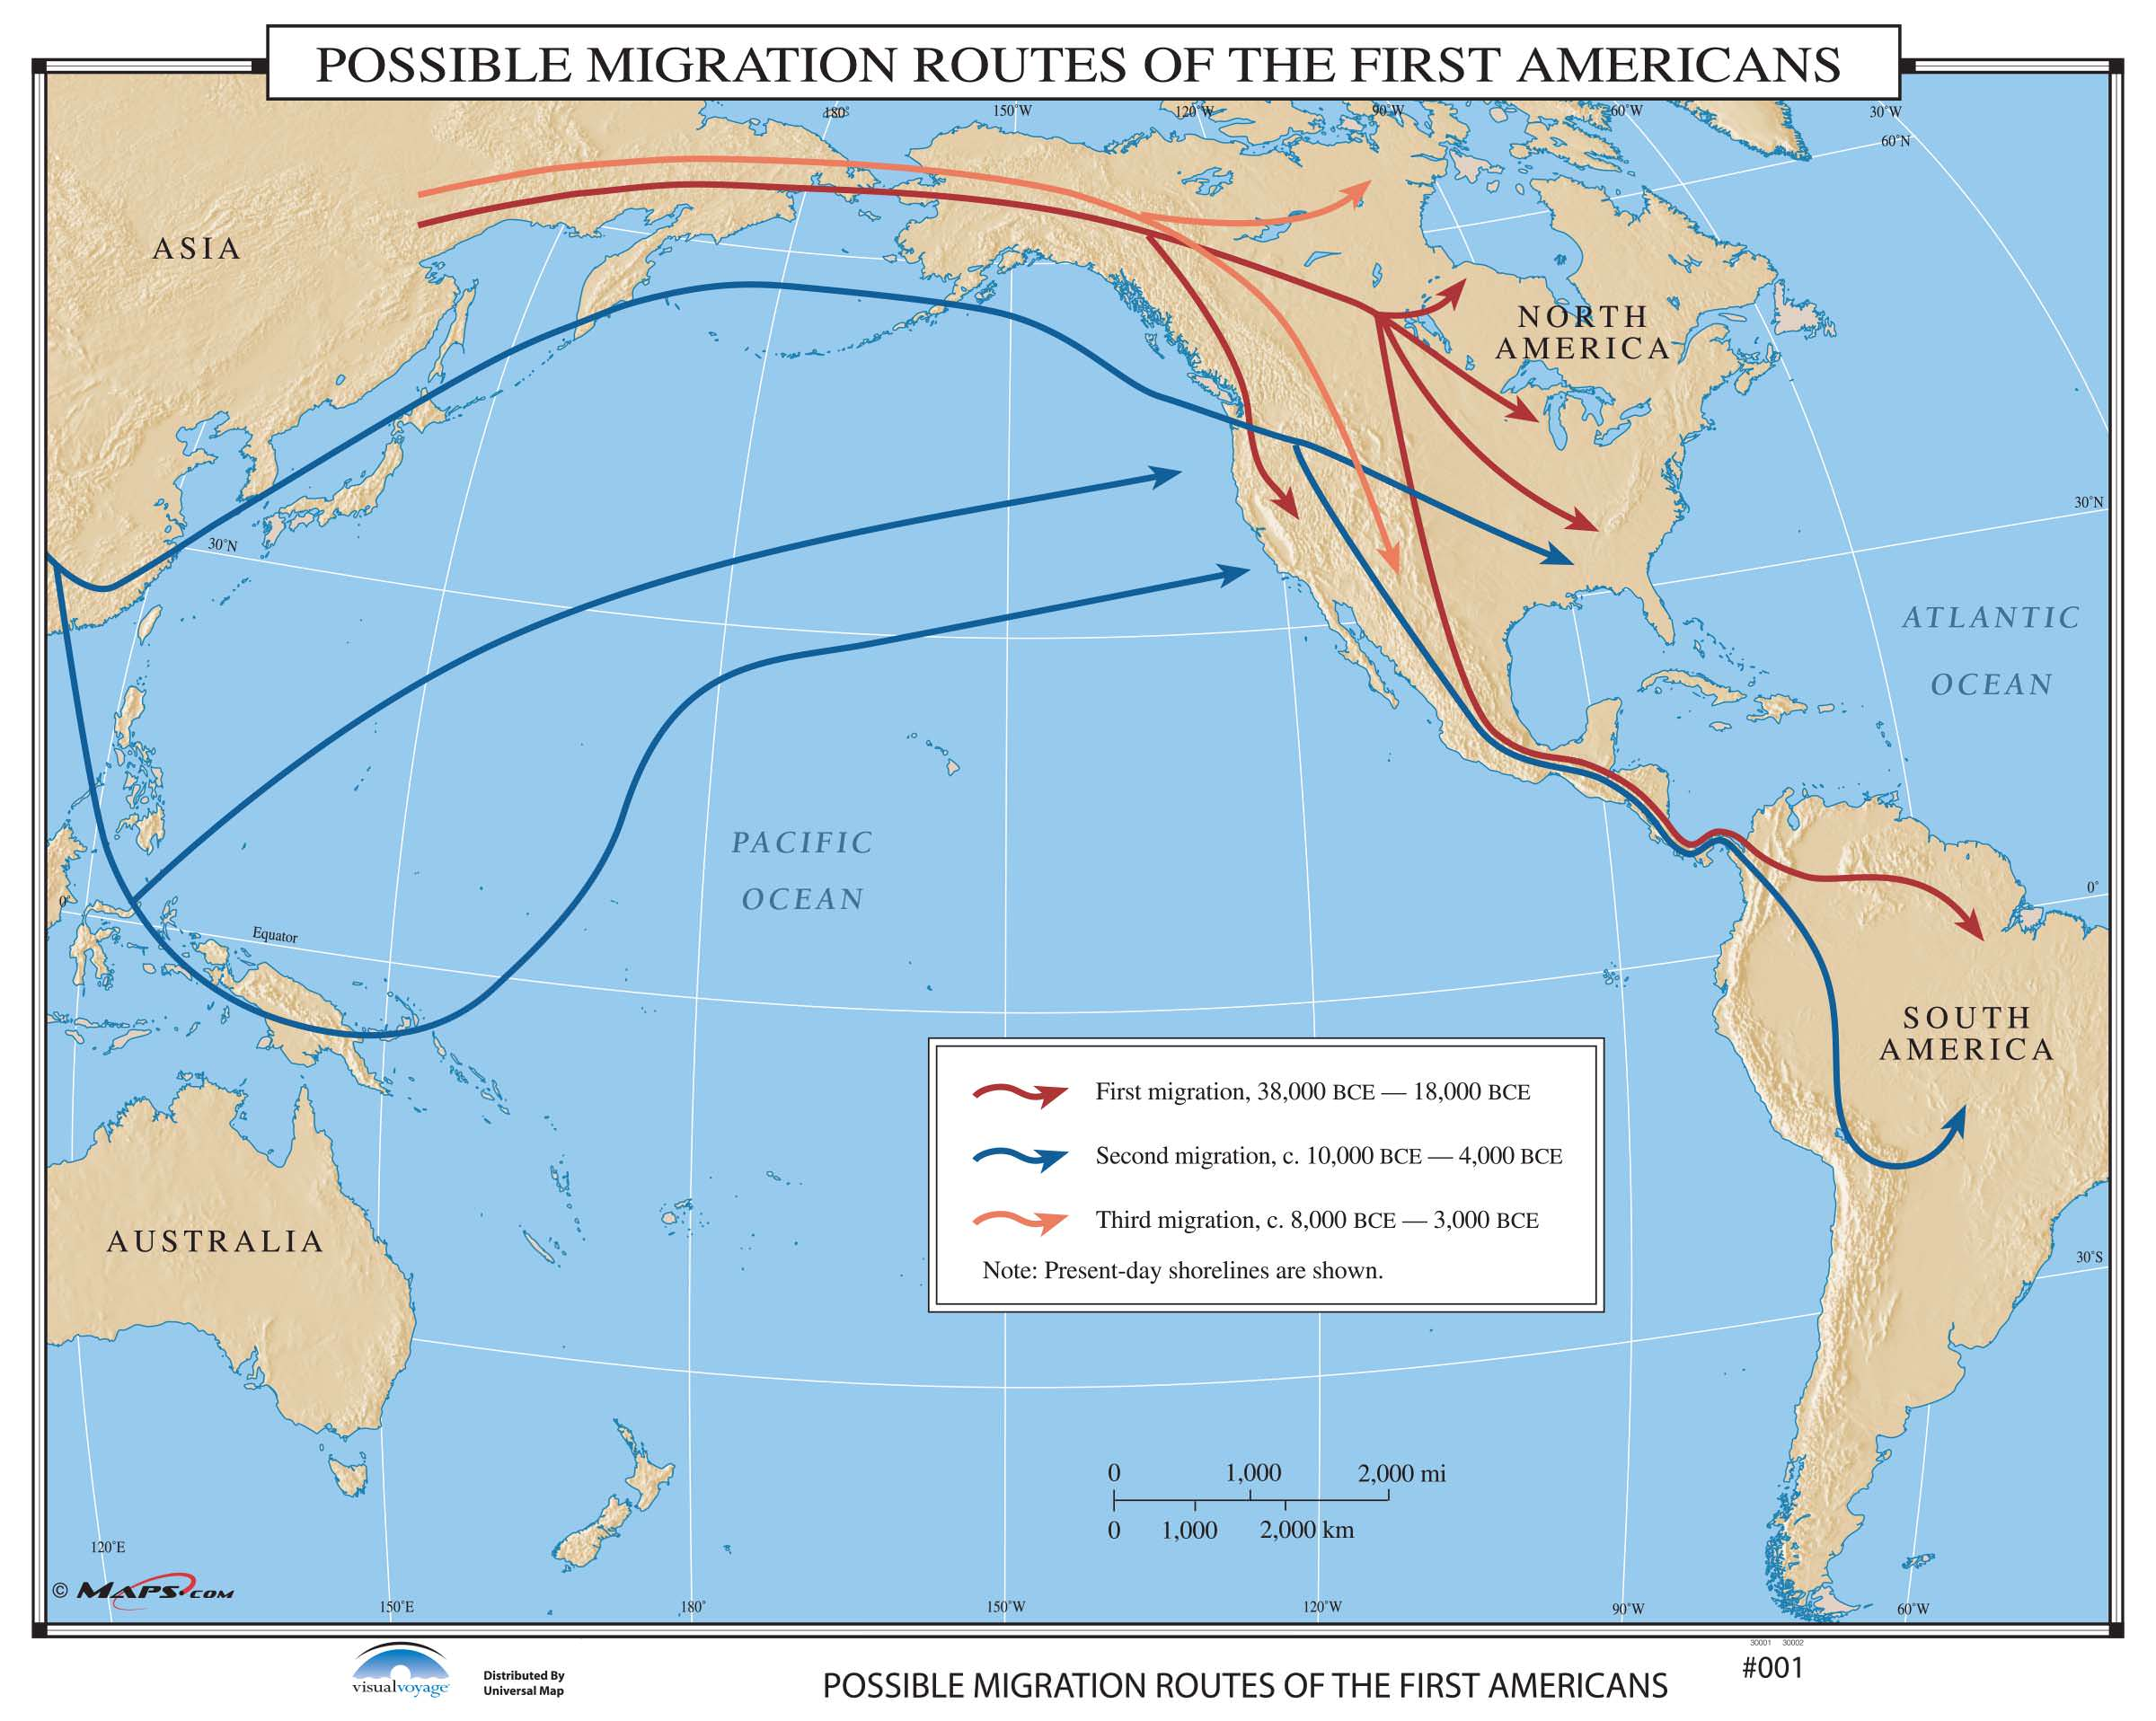 001 Possible Migration Routes Of The First Americans Kappa Map Group